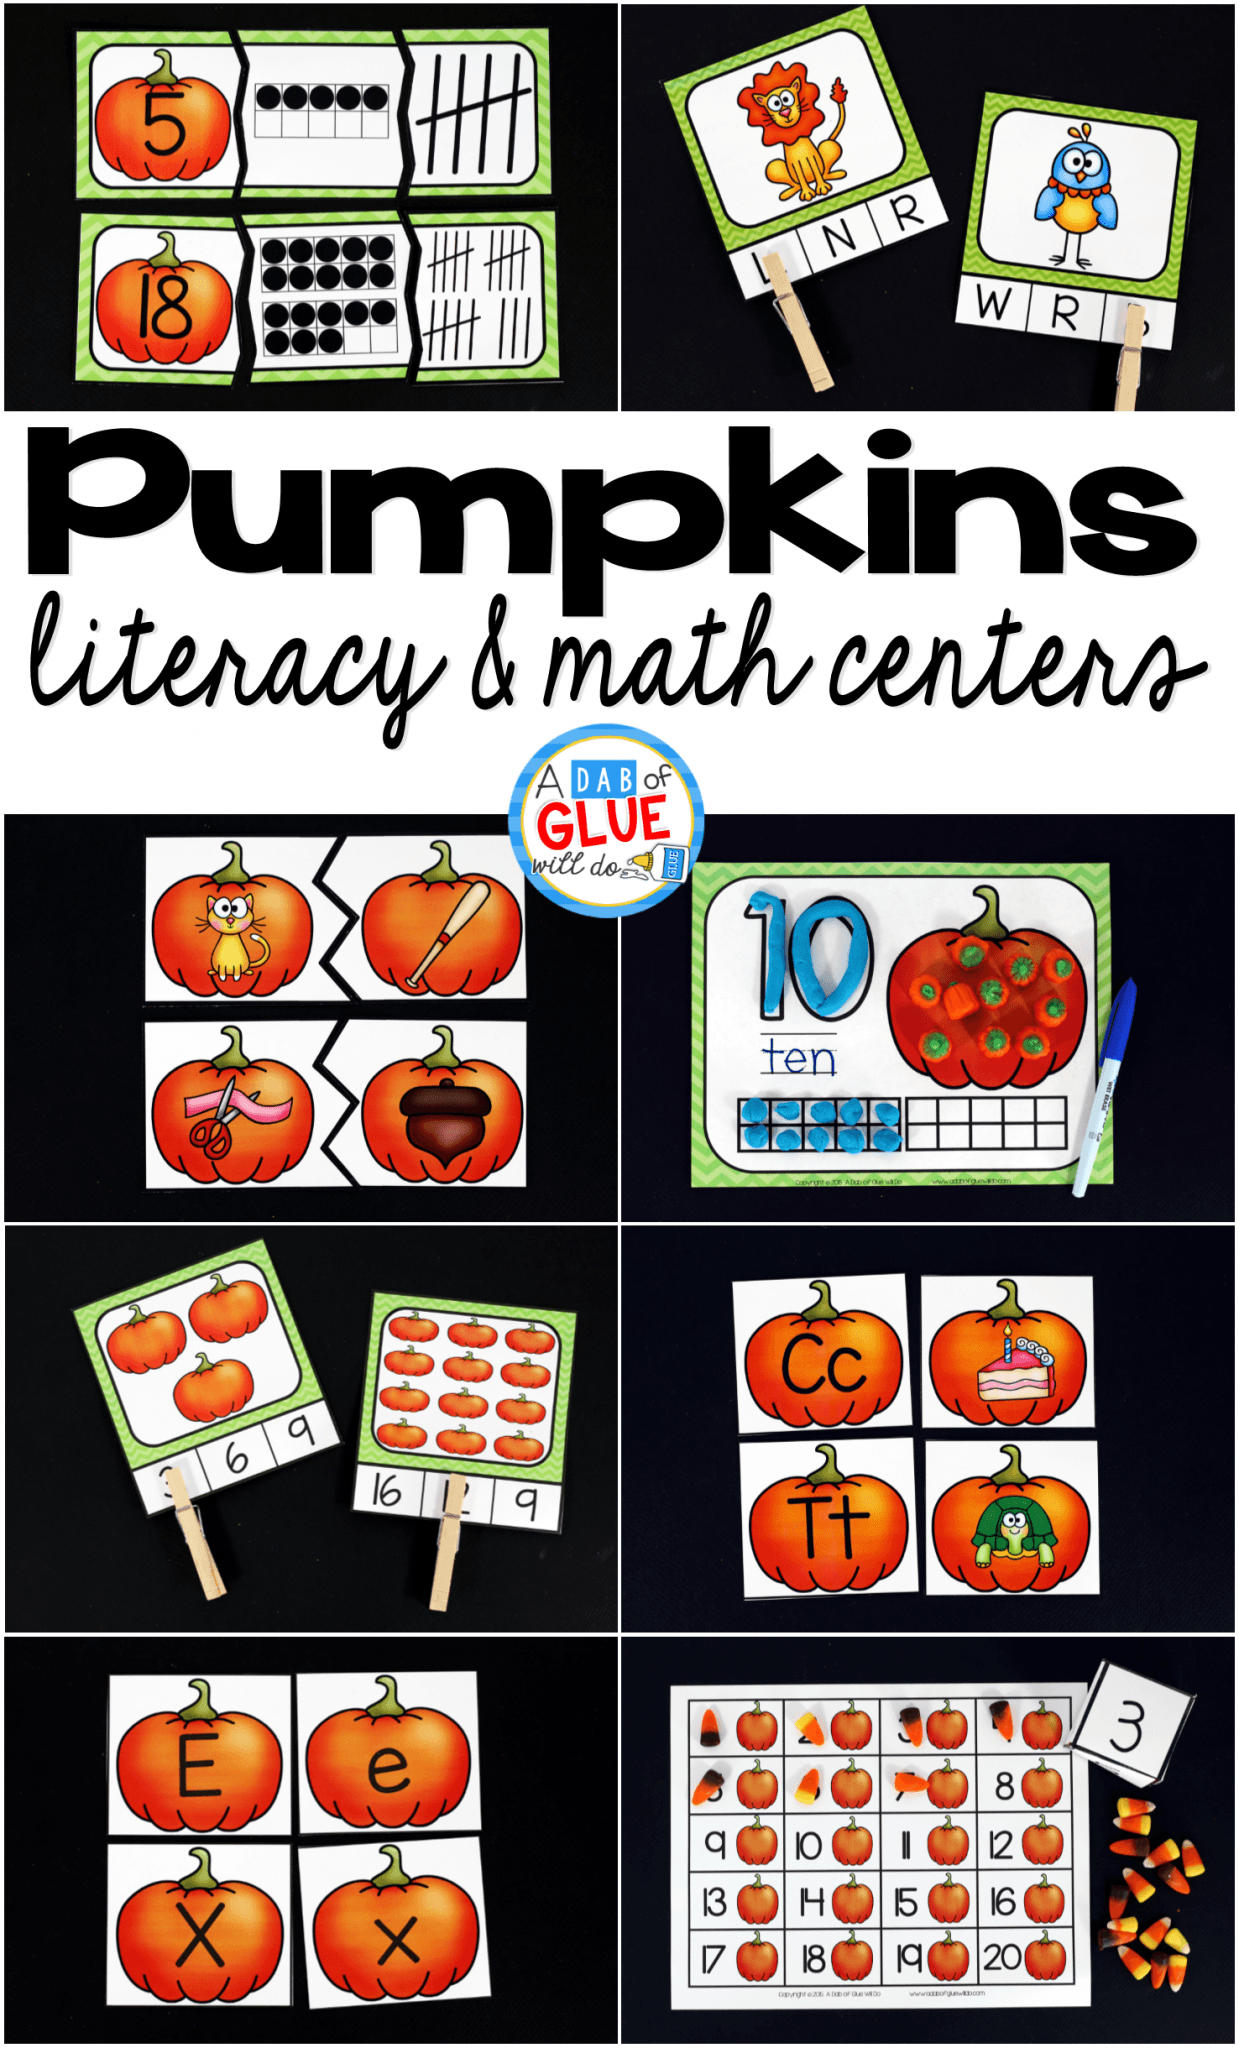 Engage your class in an exciting hands-on experience learning more about pumpkins ! This pack is perfect for language arts and math centers in Preschool, Kindergarten, and First Grade classrooms and packed full of inviting student activities. Celebrate Fall with pumpkin themed center student worksheets. Students will learn more about pumpkins using puzzles, worksheets, clip cards, and subtraction mats. This pack is great for homeschoolers, hands-on kids activities, and to add to your unit studies! Teachers will receive the complete unit for Autumn pumpkin math and literacy activities to help teach the ocean to your lower elementary students!